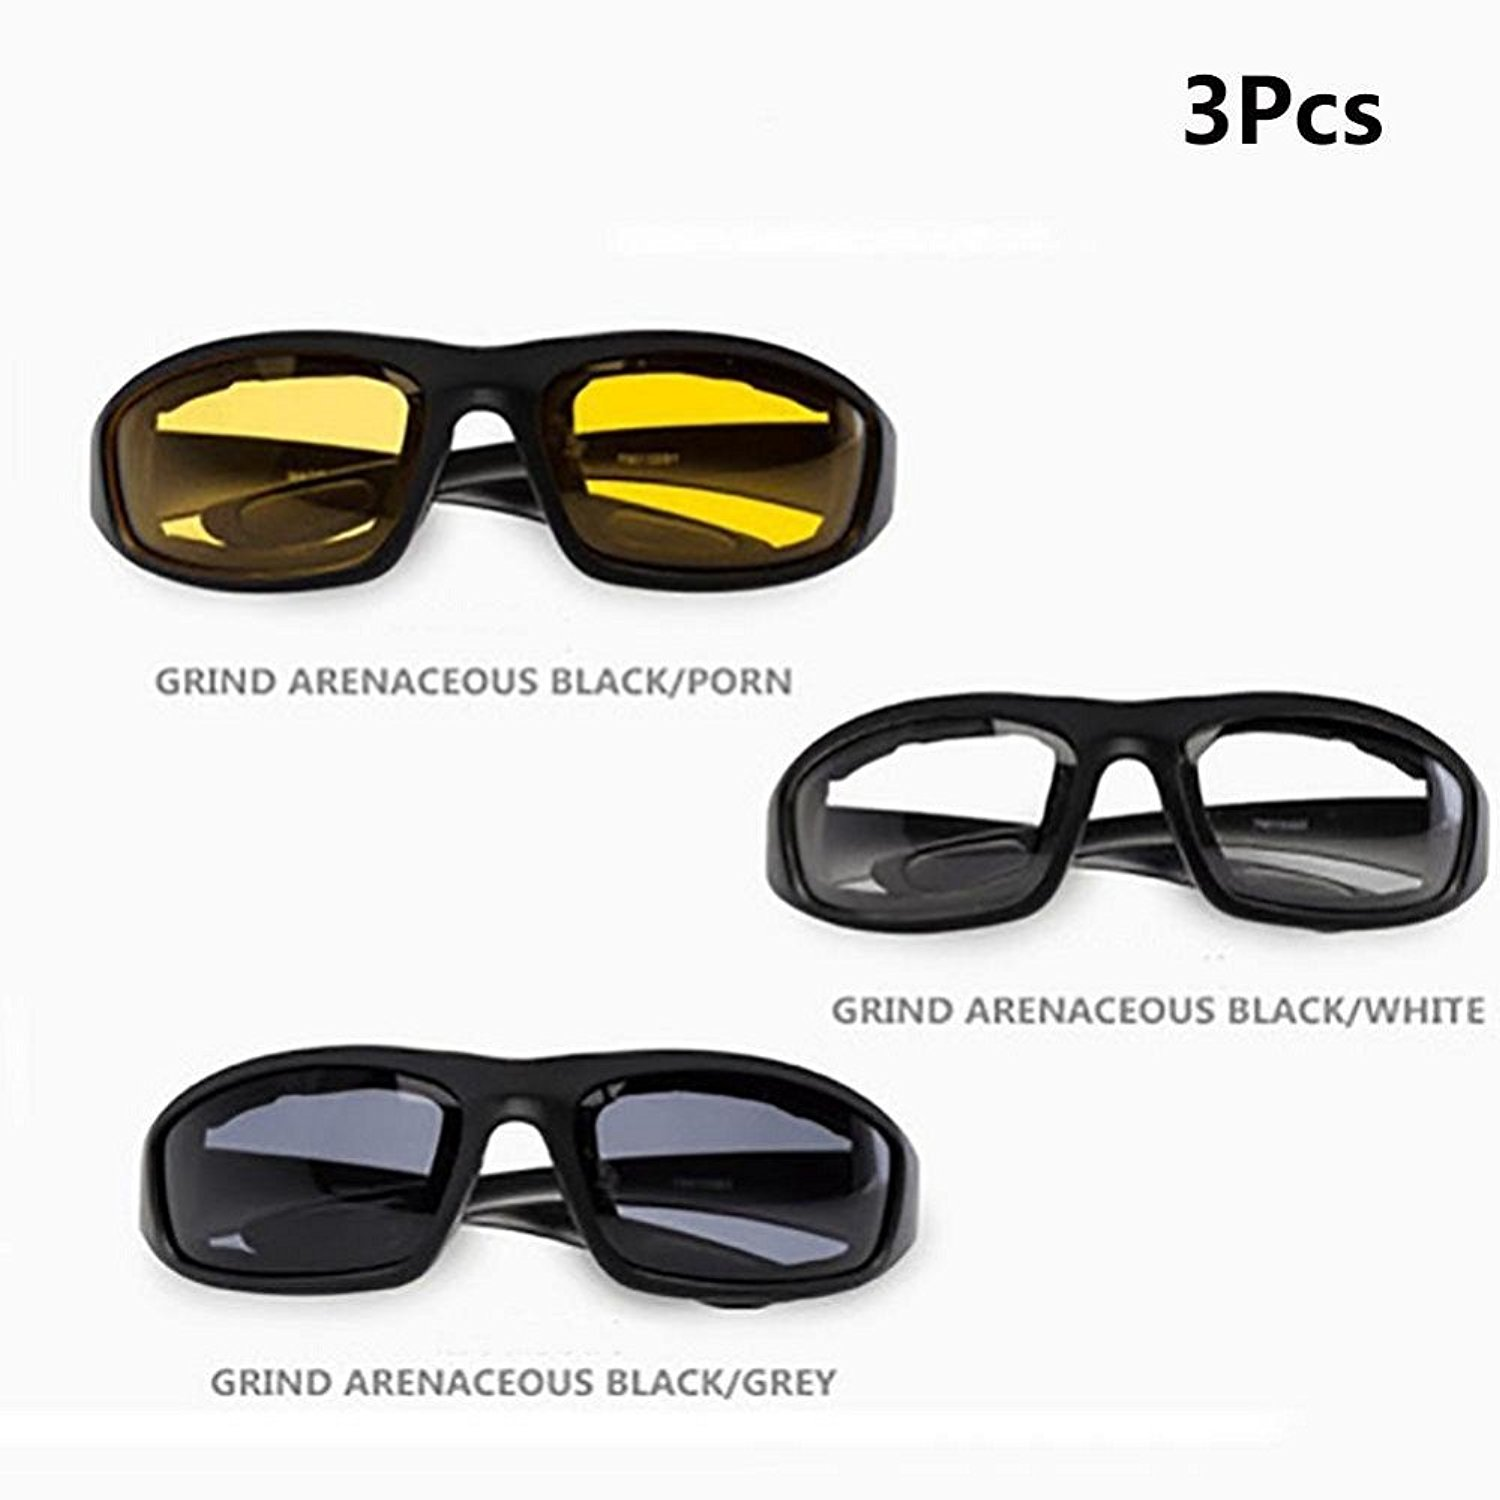 7ac10c7054 Get Quotations · Flank 3 Pcs Motorcycle Riding Glasses